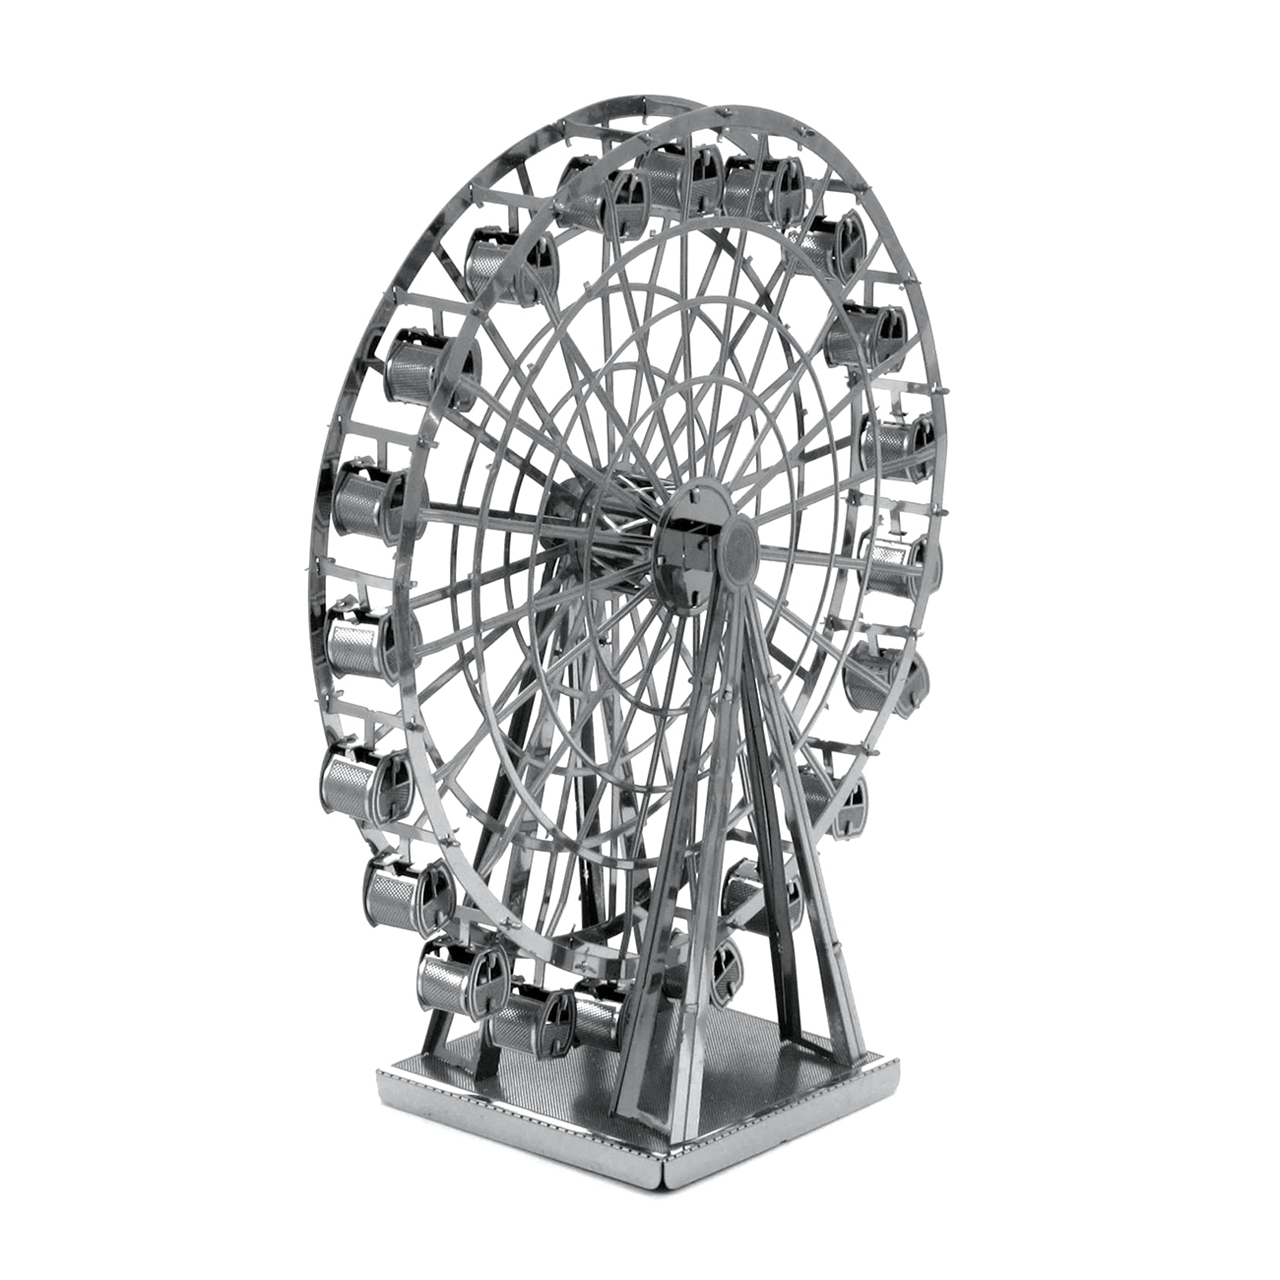 Fascinations Metal Earth 3d Metal Model Diy Kits Metal